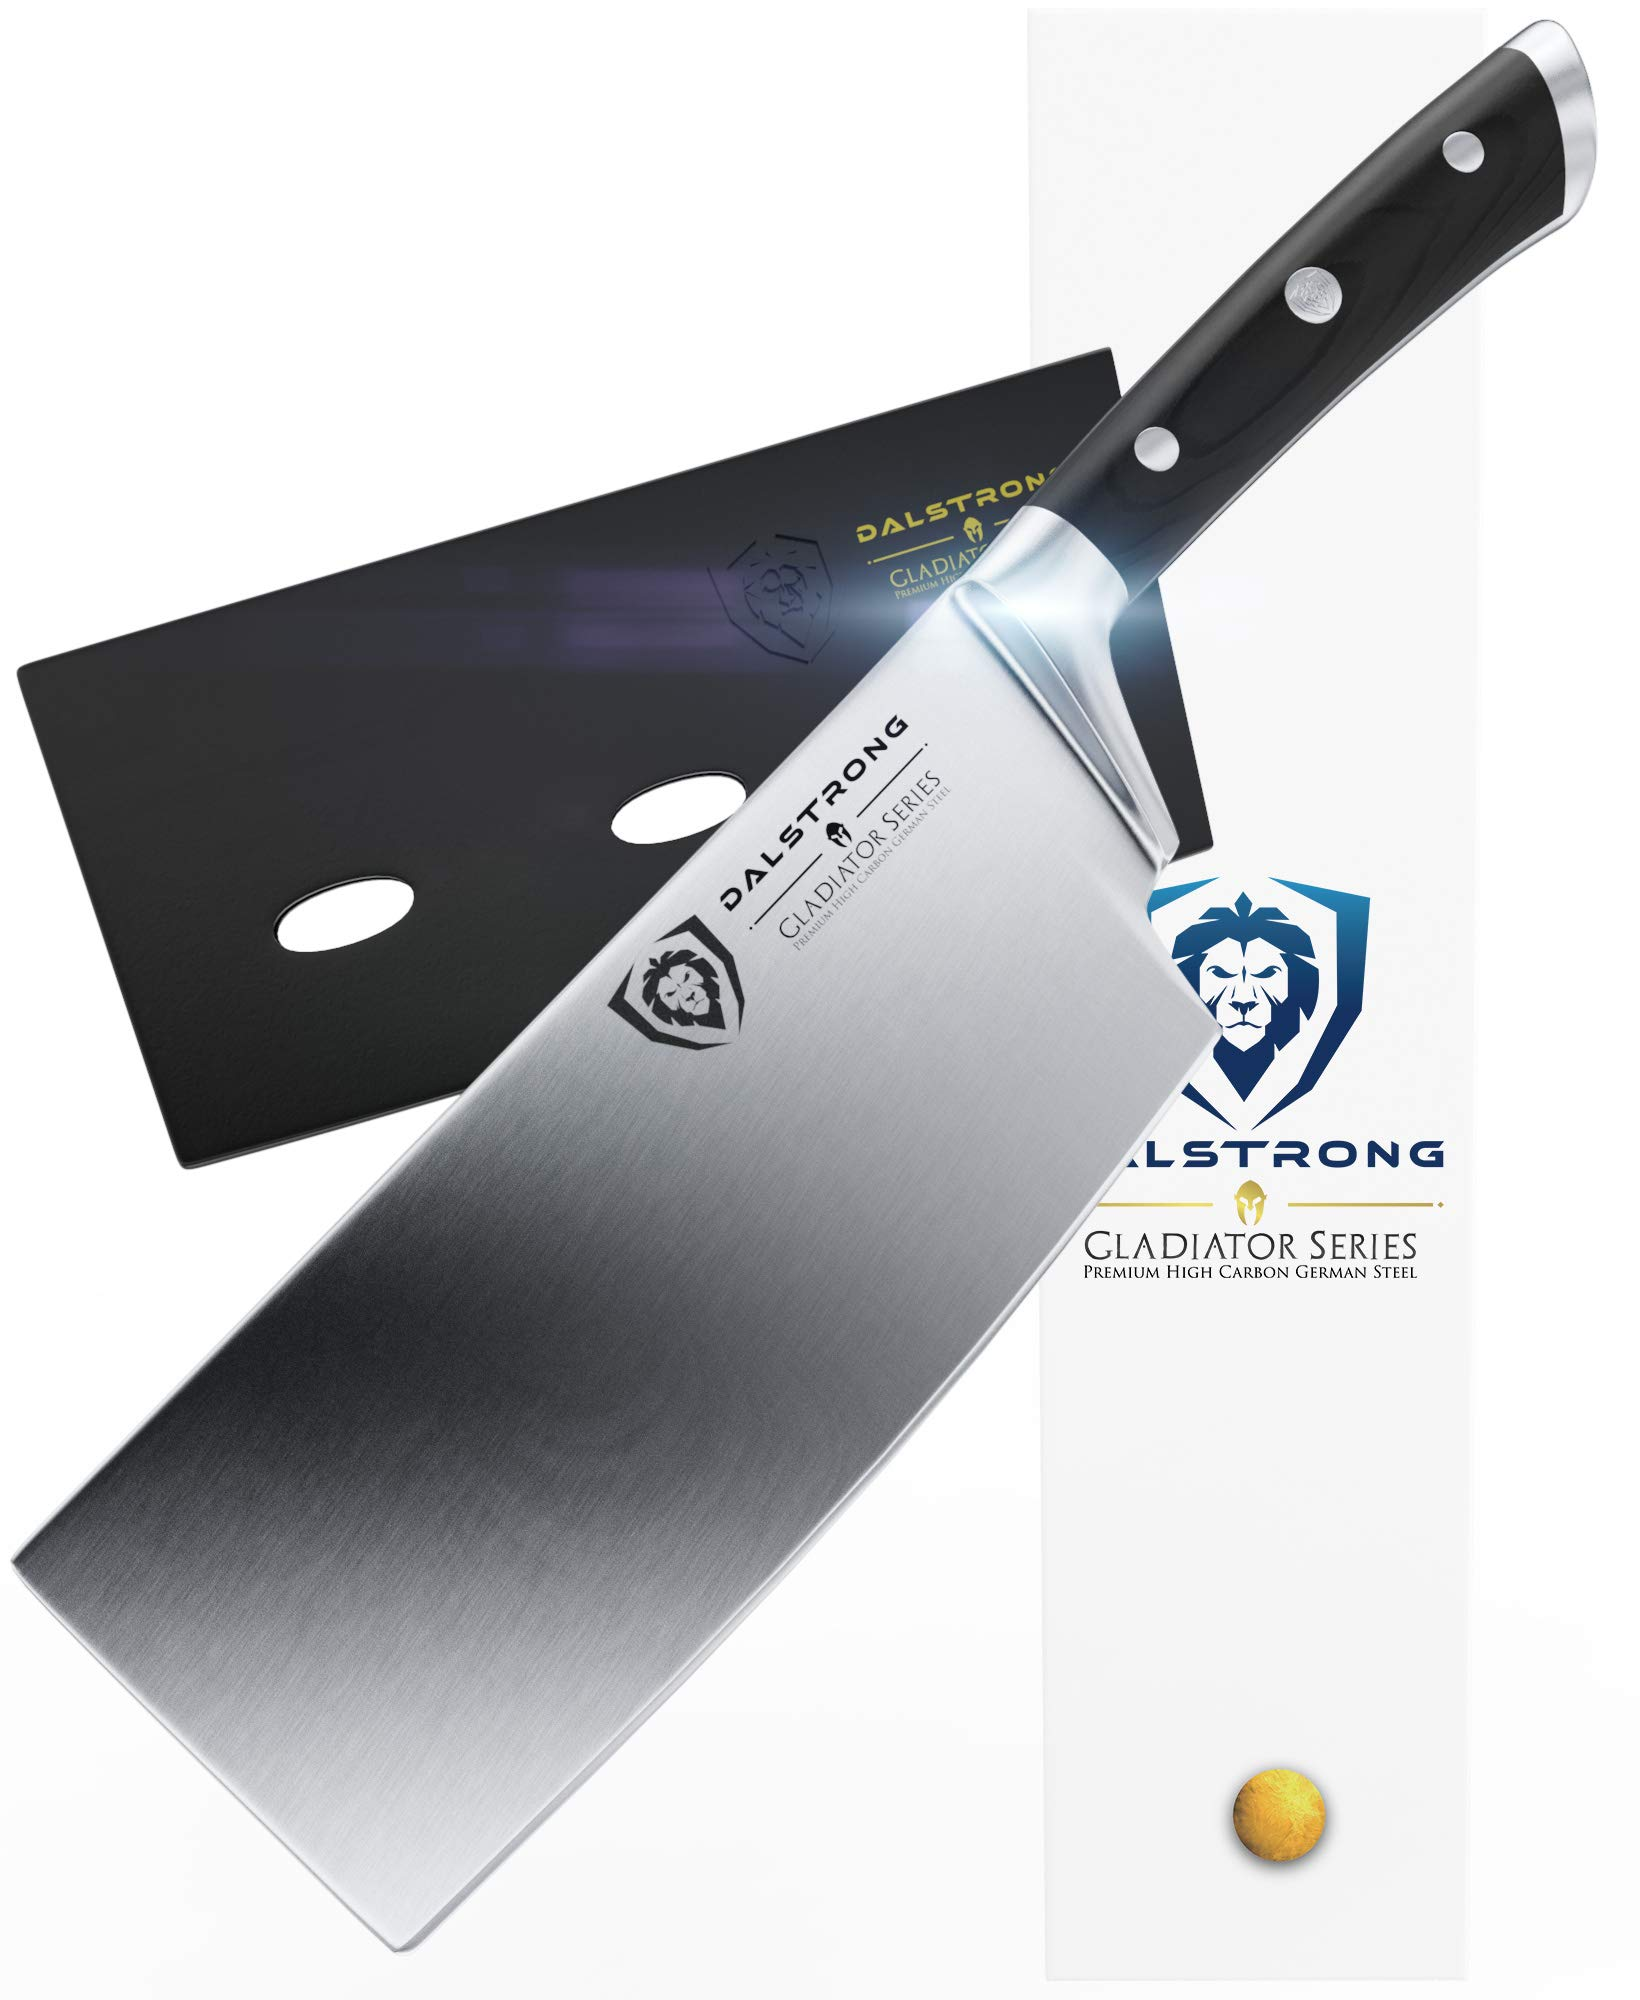 DALSTRONG Cleaver - Gladiator Series - German HC Steel - 7'' (178 mm) - Sheath by Dalstrong